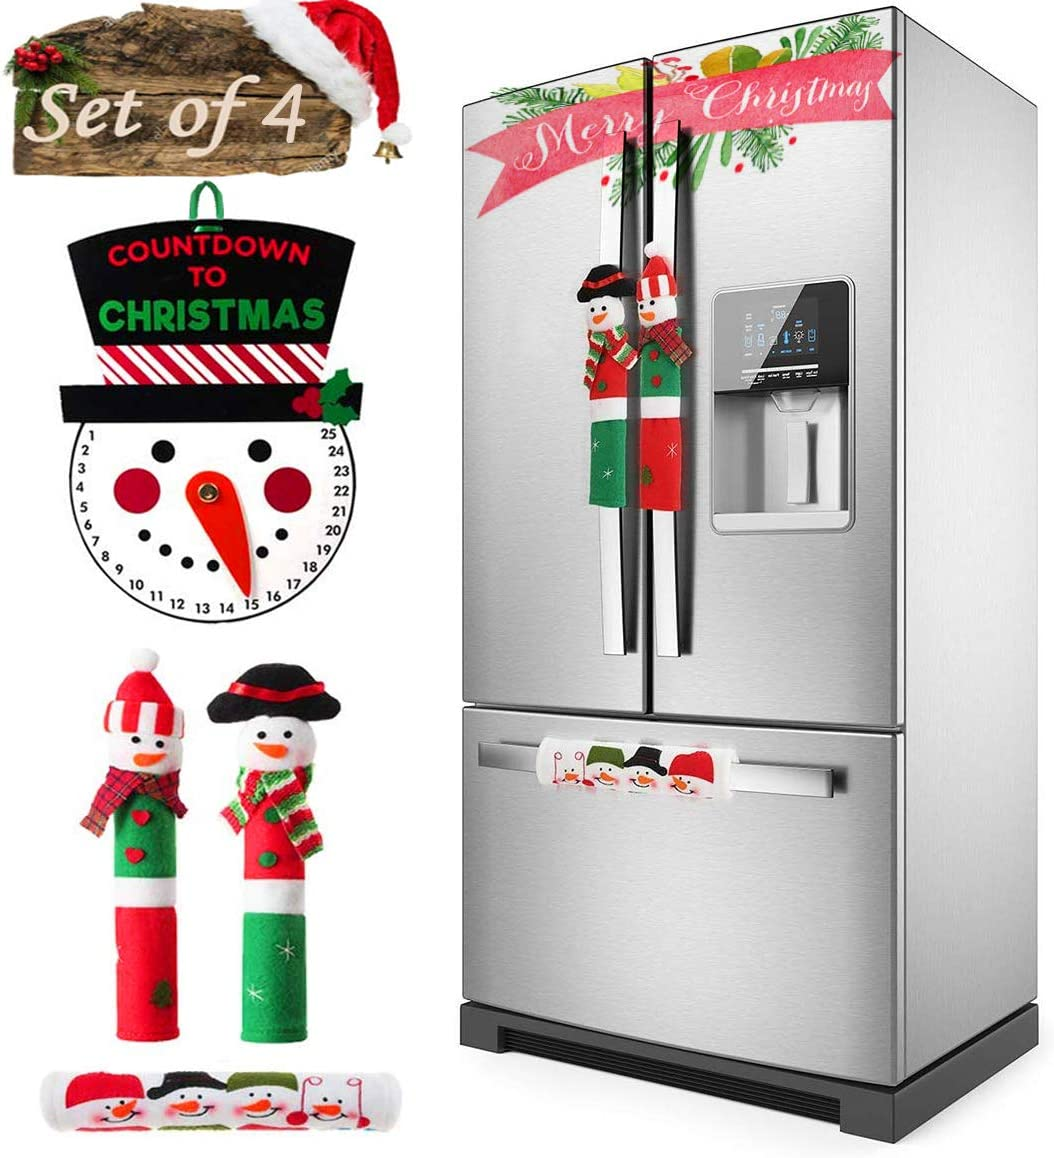 MSDADA Christmas Refrigerator Handle Covers Set of 4, Adorable Snowman Christmas Countdown Calendar, Christmas New Year Holiday Xmas Decorations for Kitchen Appliance Microwave Oven Door